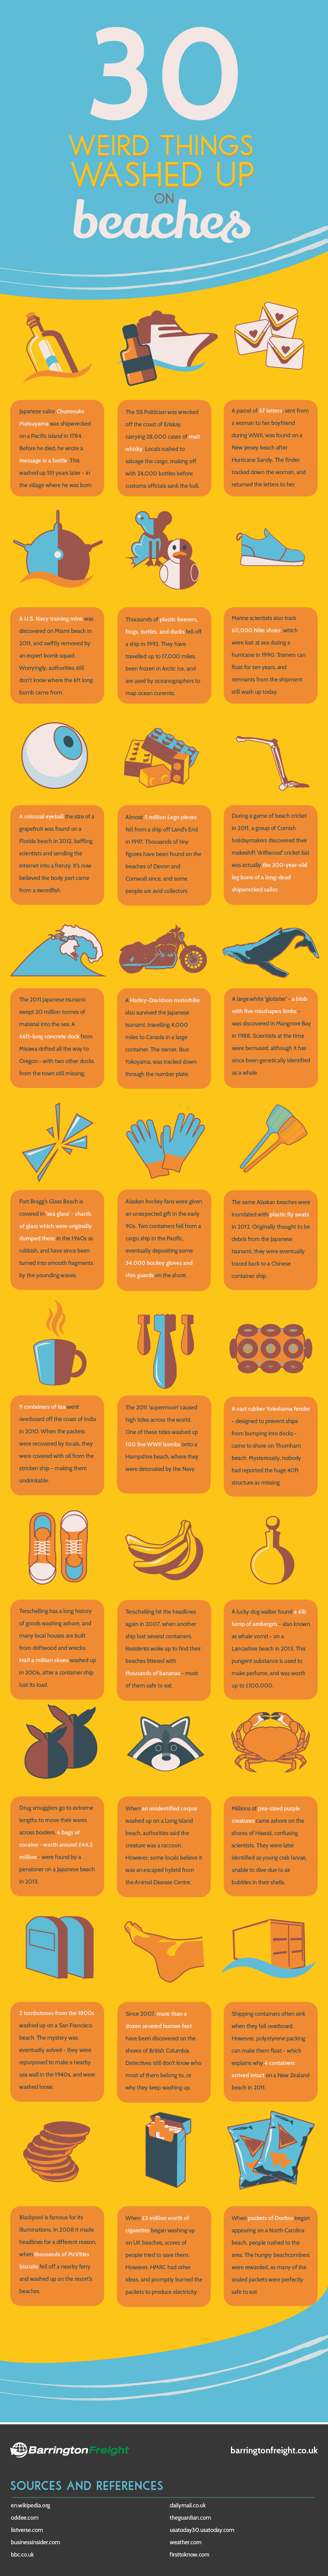 Washed Up on Beaches Infographic